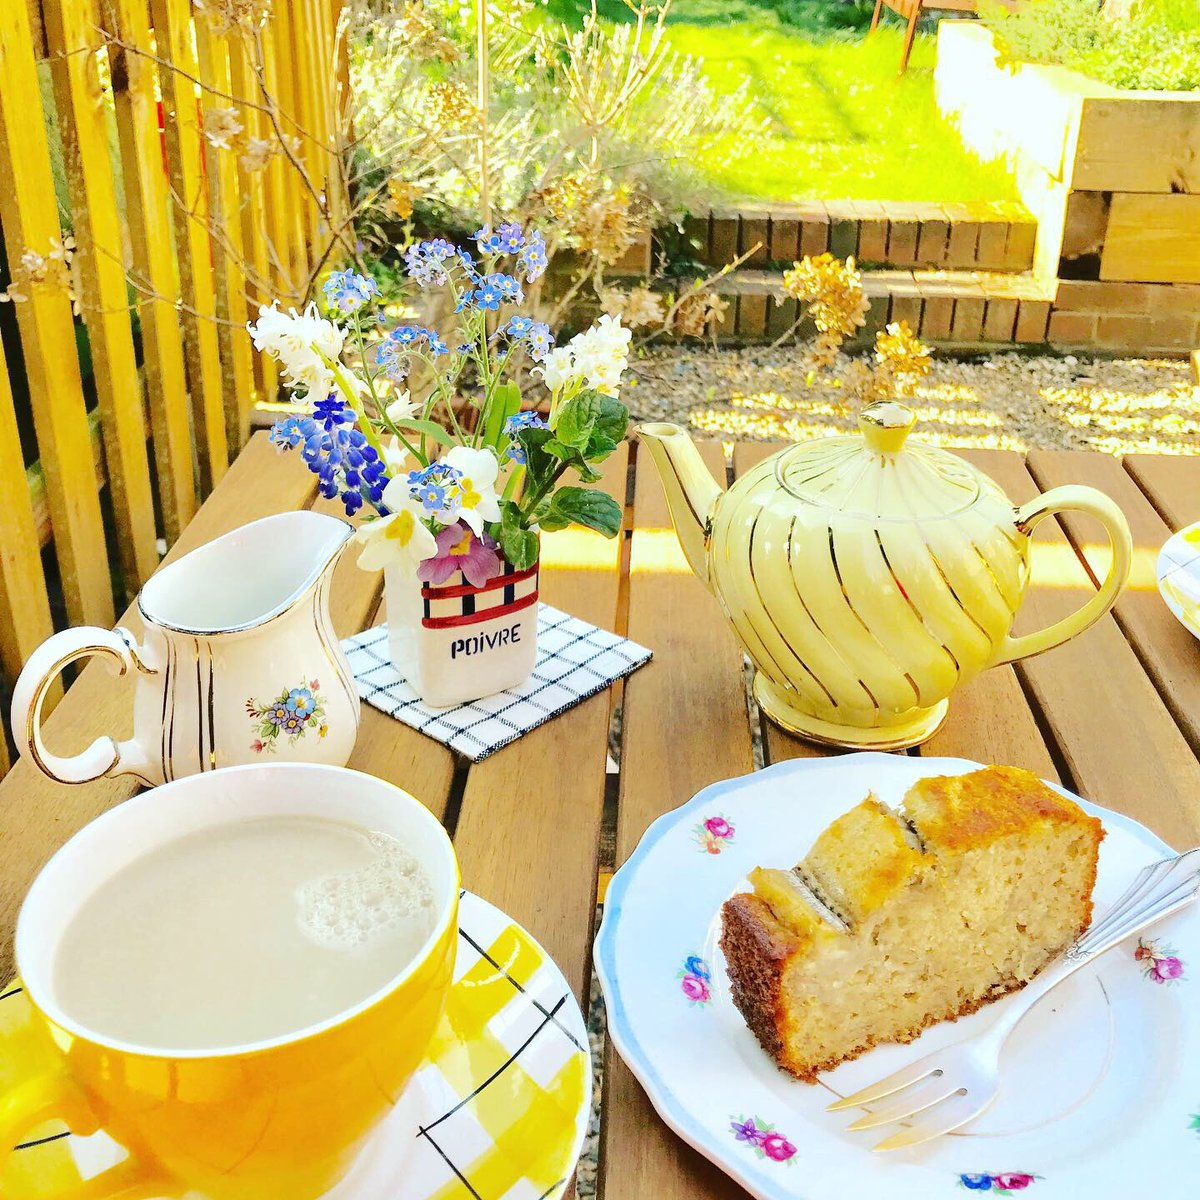 ✳︎ #travellingmadeleine_cafe ✳︎ That was the perfect weather for #garden #homecafe ! The cake of the week is banana cake by my mister.  #table #vintage #vintagechina #teatime #antique  #sweets #vintagelifestyle  #londonlife pic.twitter.com/Cdc4HoJbvv